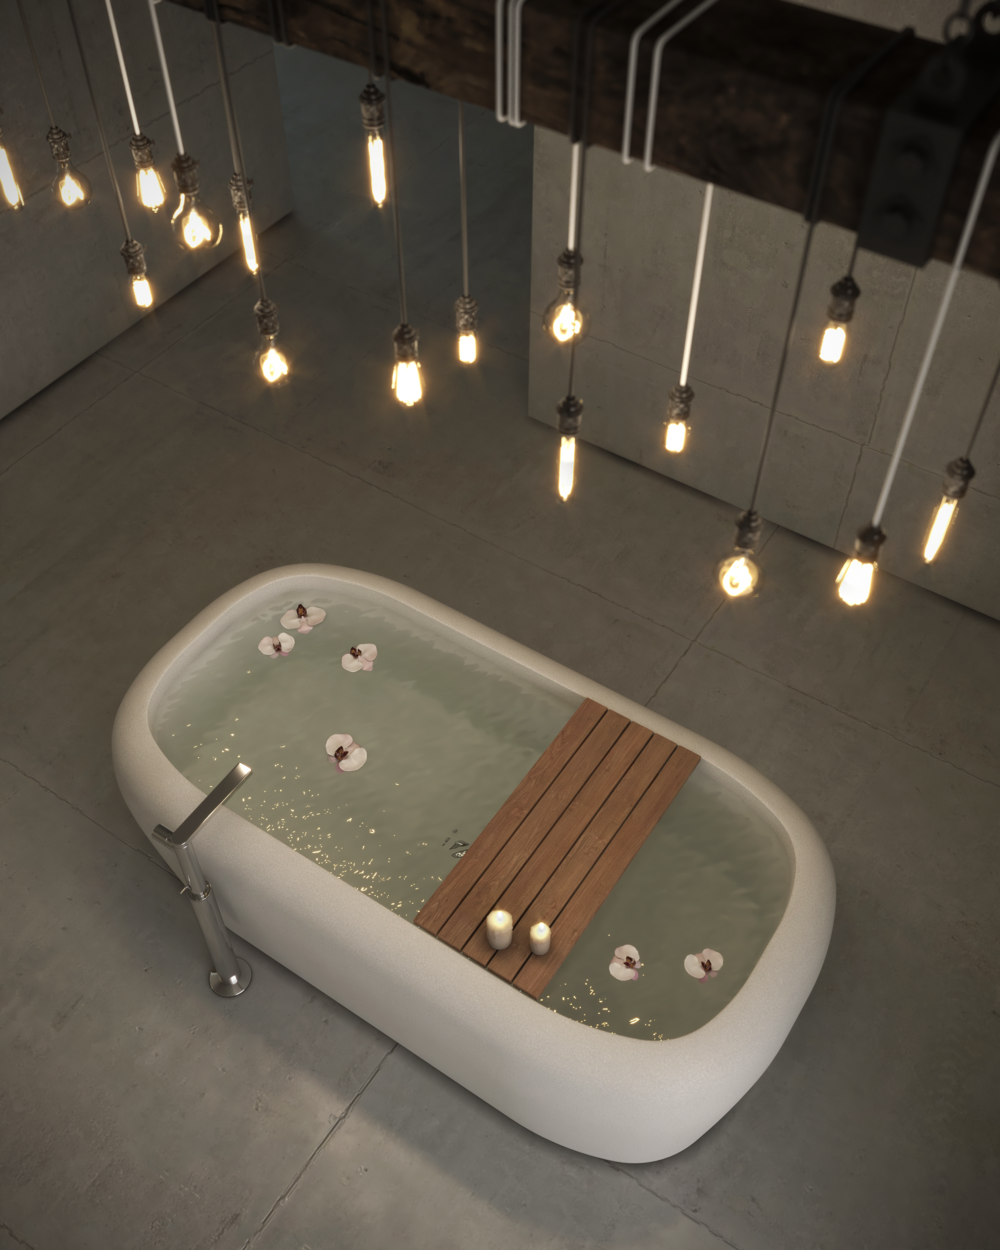 Concept bathroom to showcase bathtub product